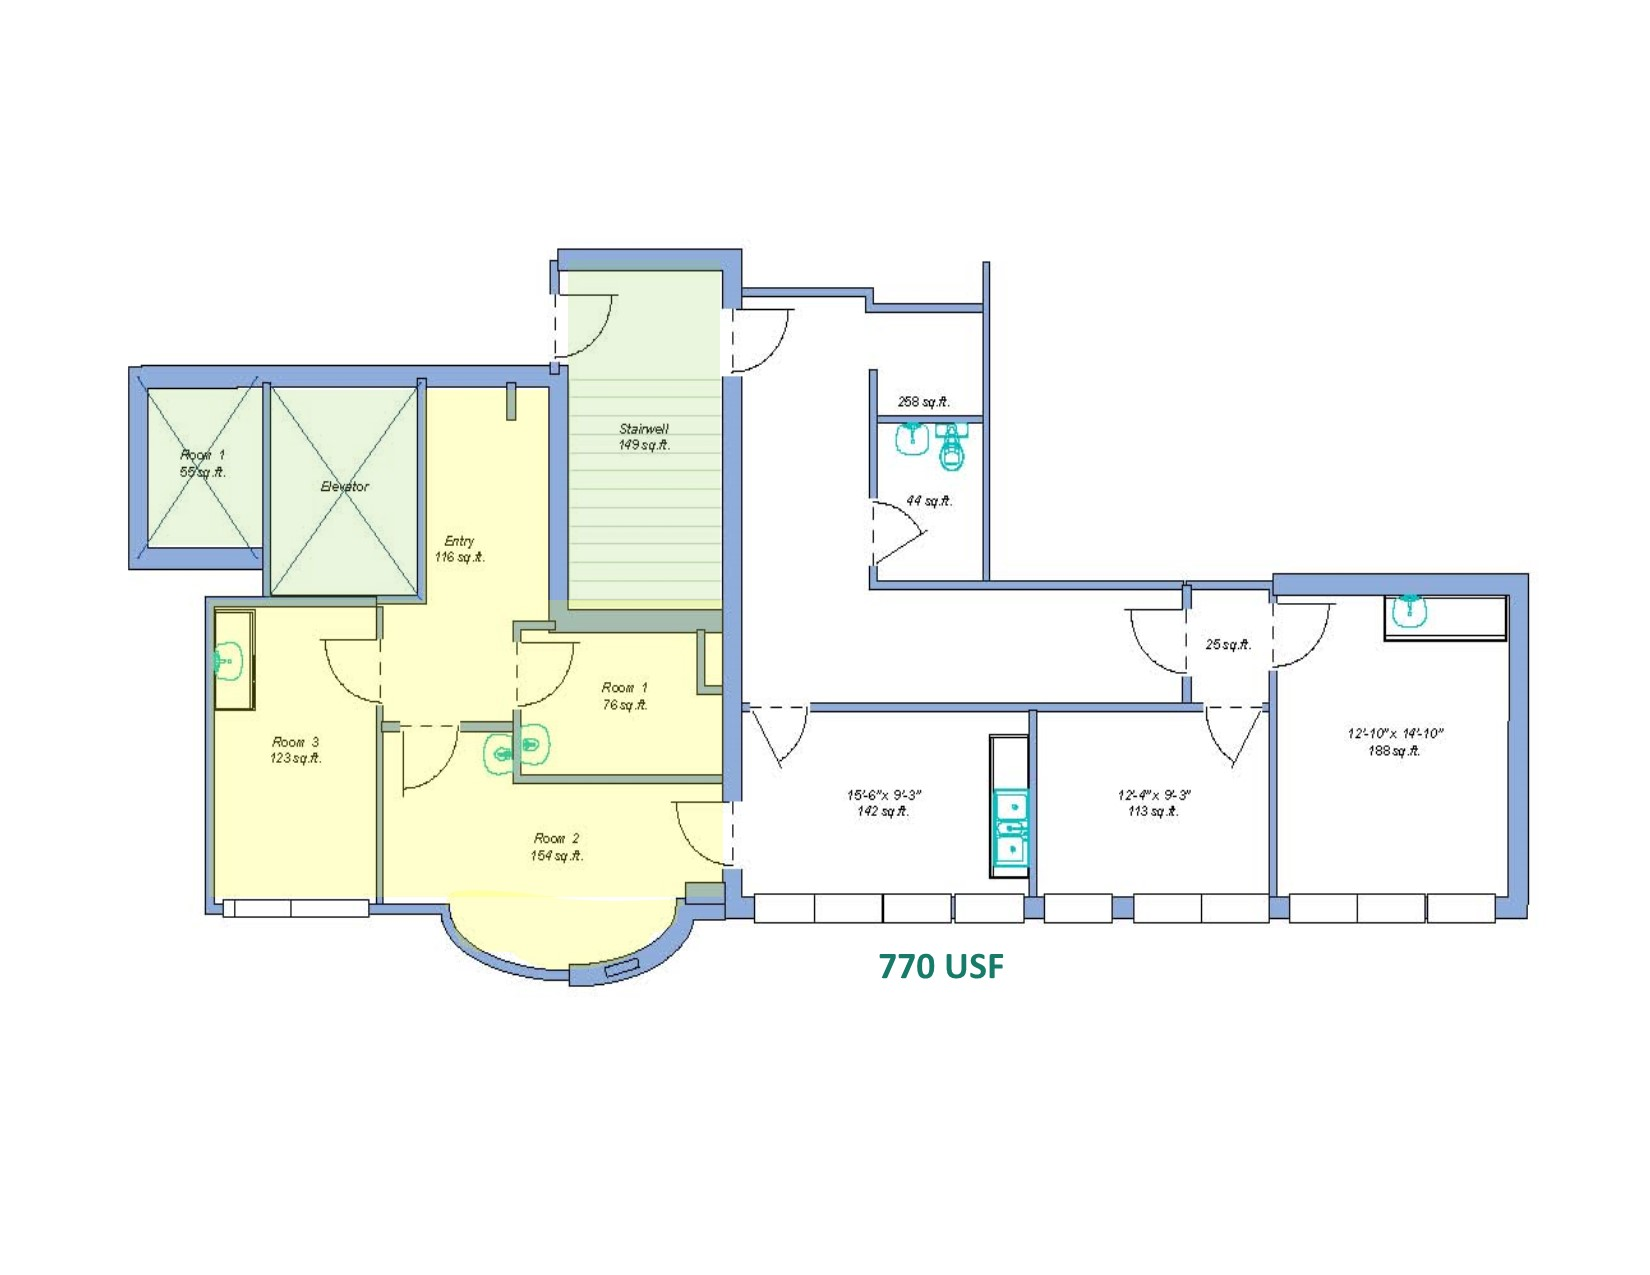 This 800 Sq. Ft. Unit Has An Additional 540 Square Feet Of Contiguous Space  Next Door. The Yellow Block On The Floor Plan Is Referencing The Office  Space ...